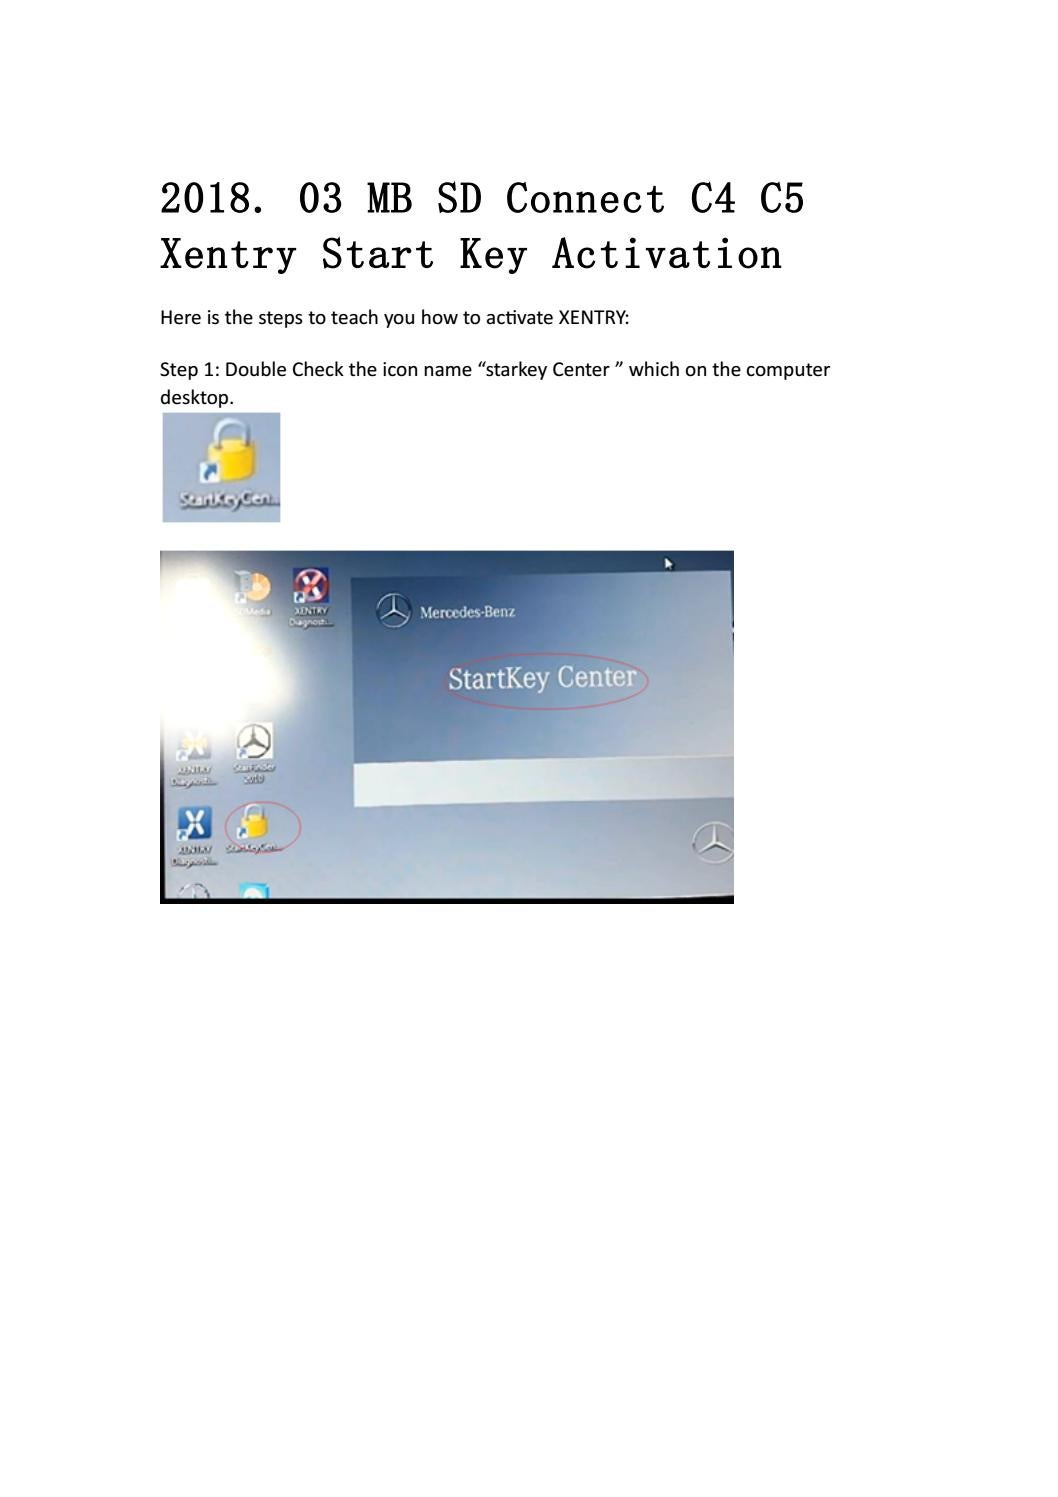 2018 03 mb sd connect c4 c5 xentry start key activation by